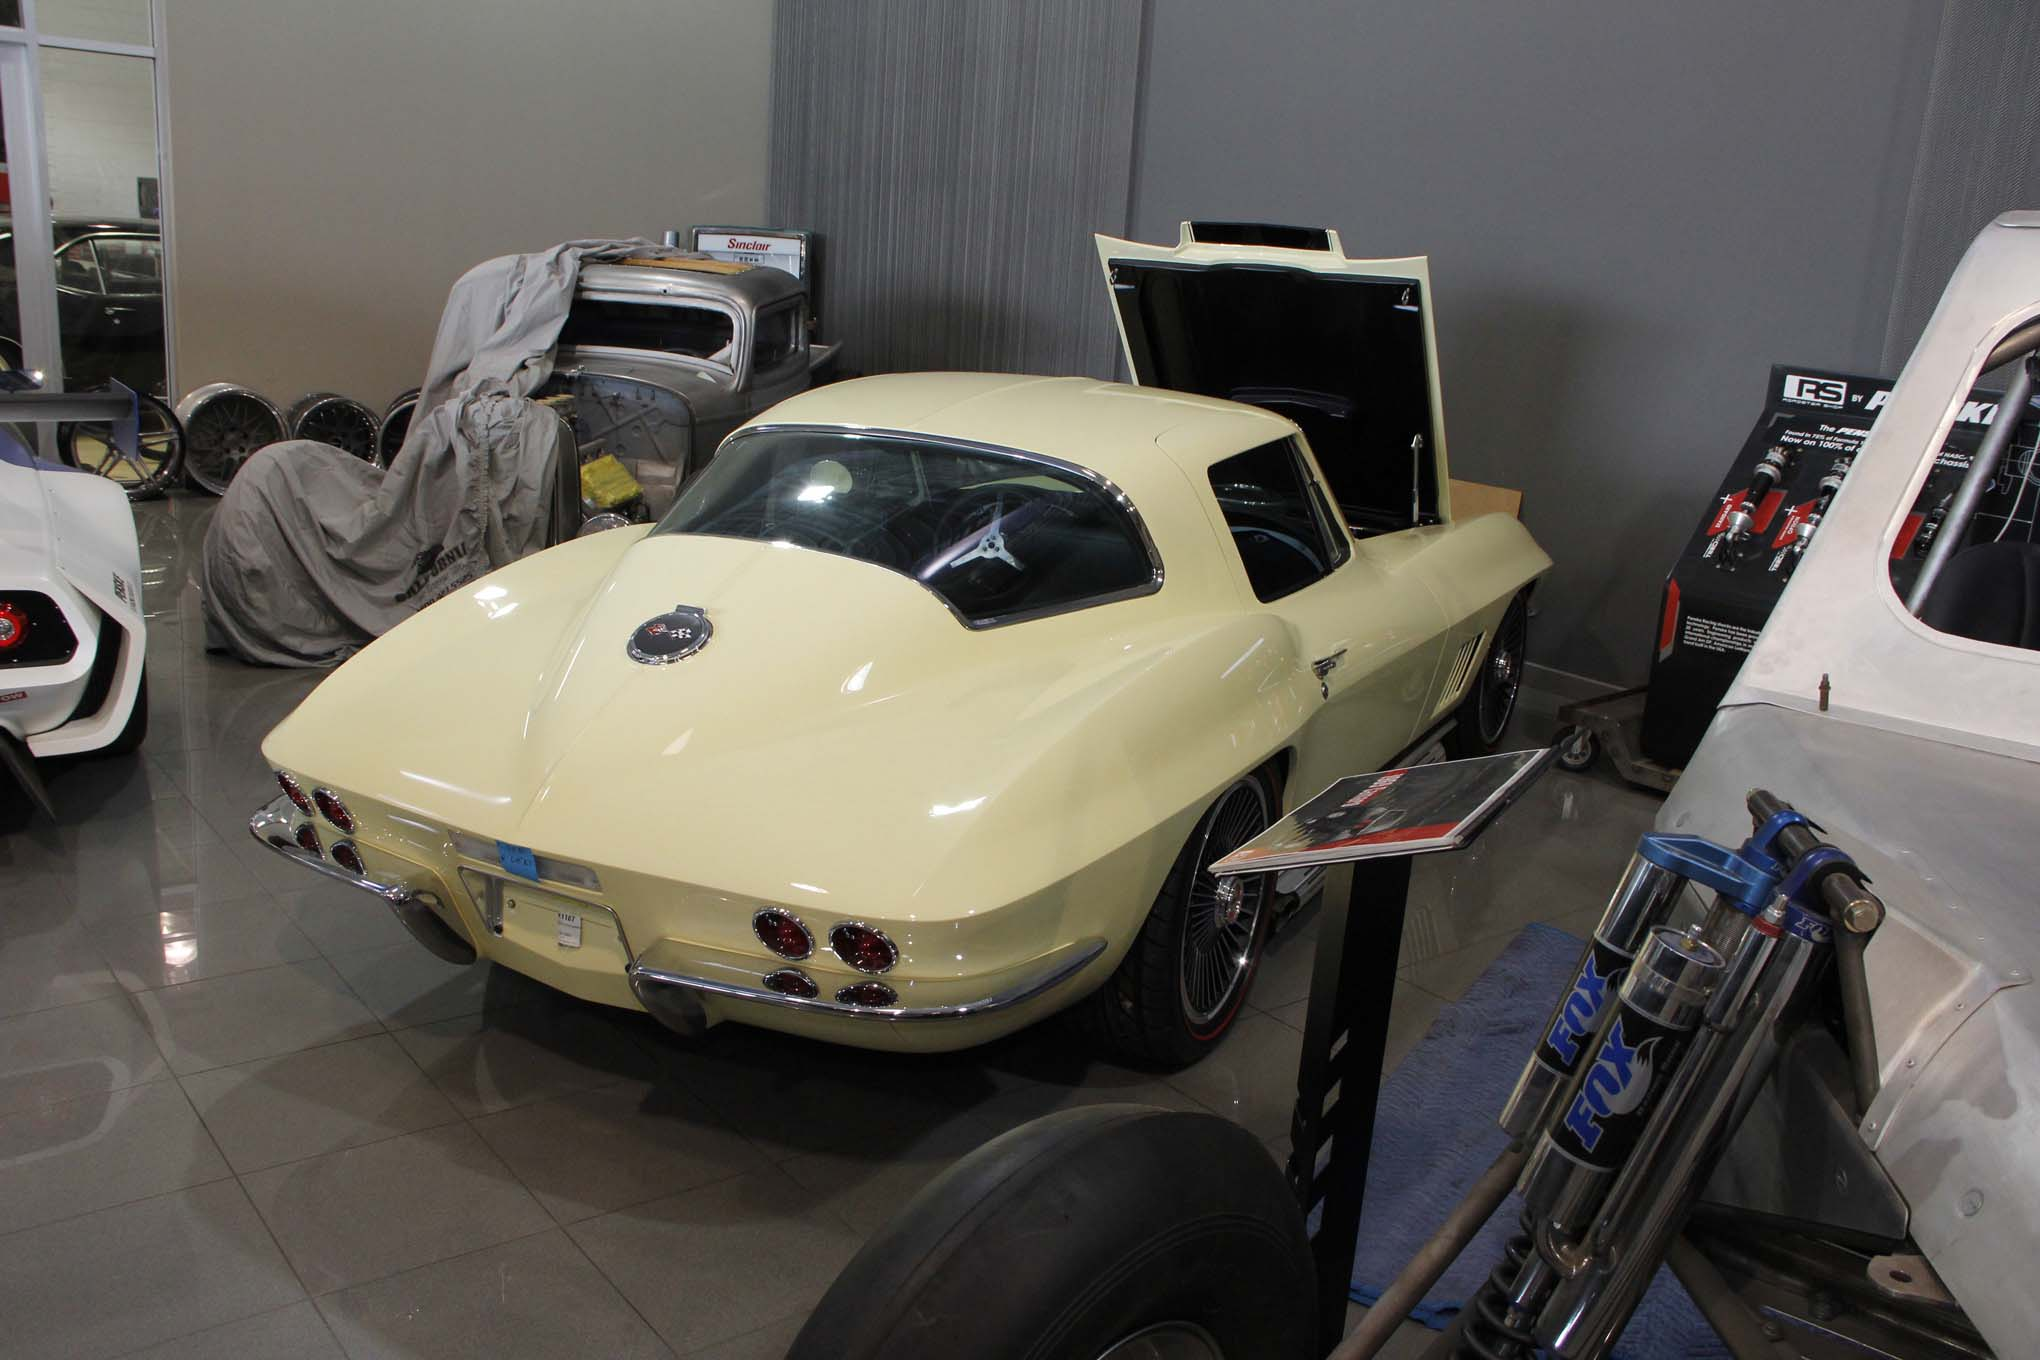 We almost walked right by this 1967 Corvette. See anything odd?